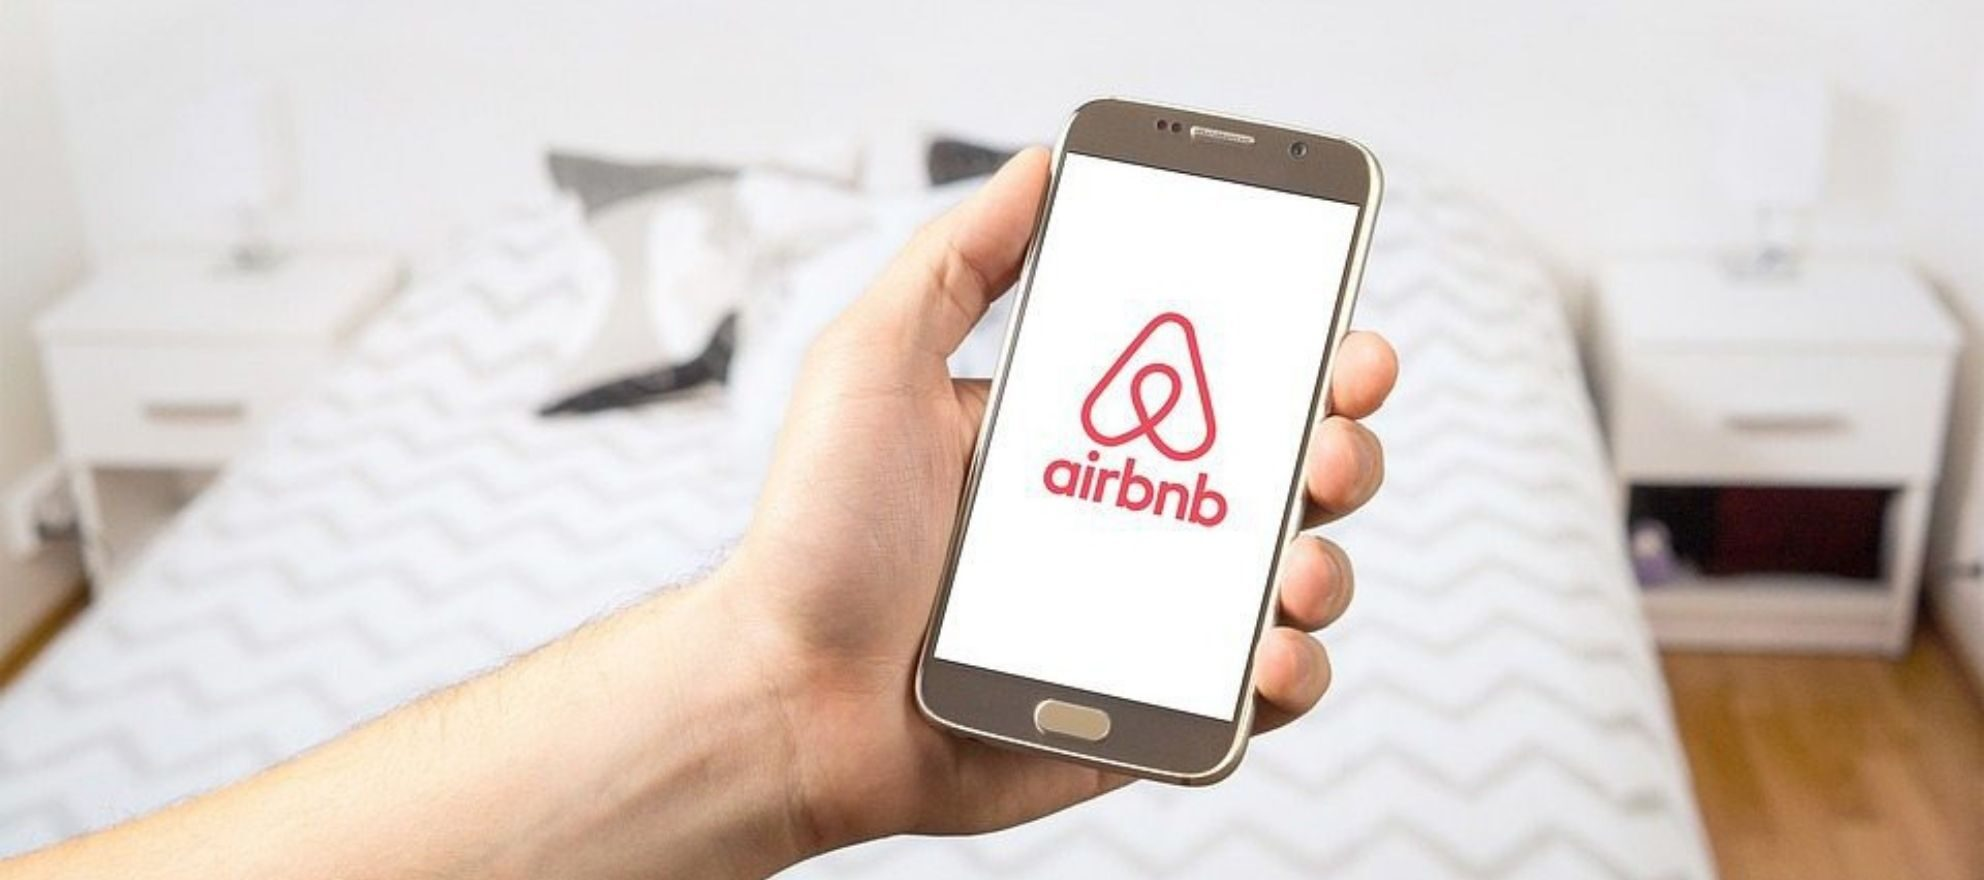 With Airbnb IPO, Realtors poised to become big shareholders